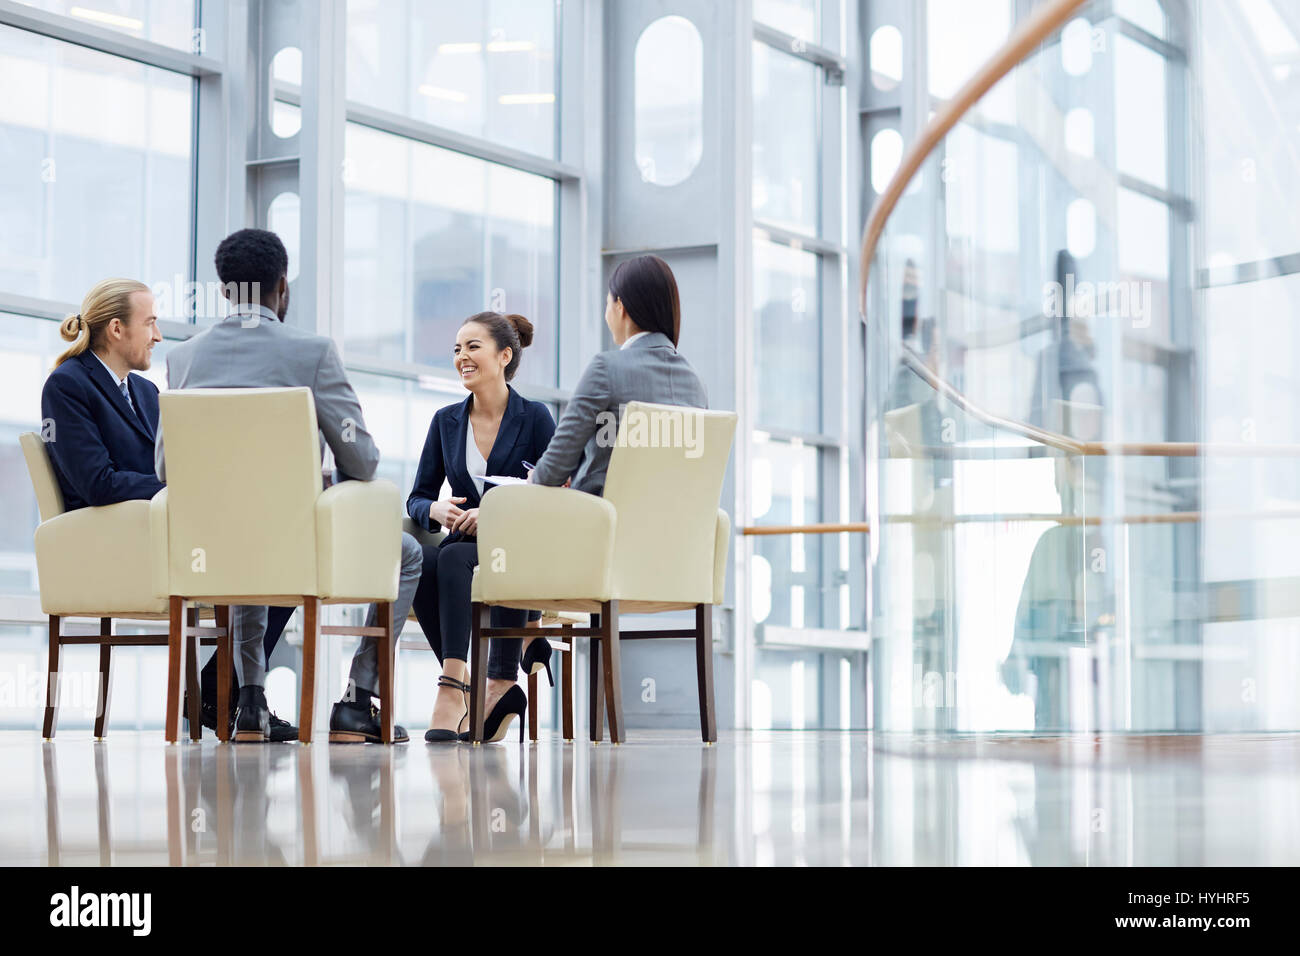 Discussing business market - Stock Image